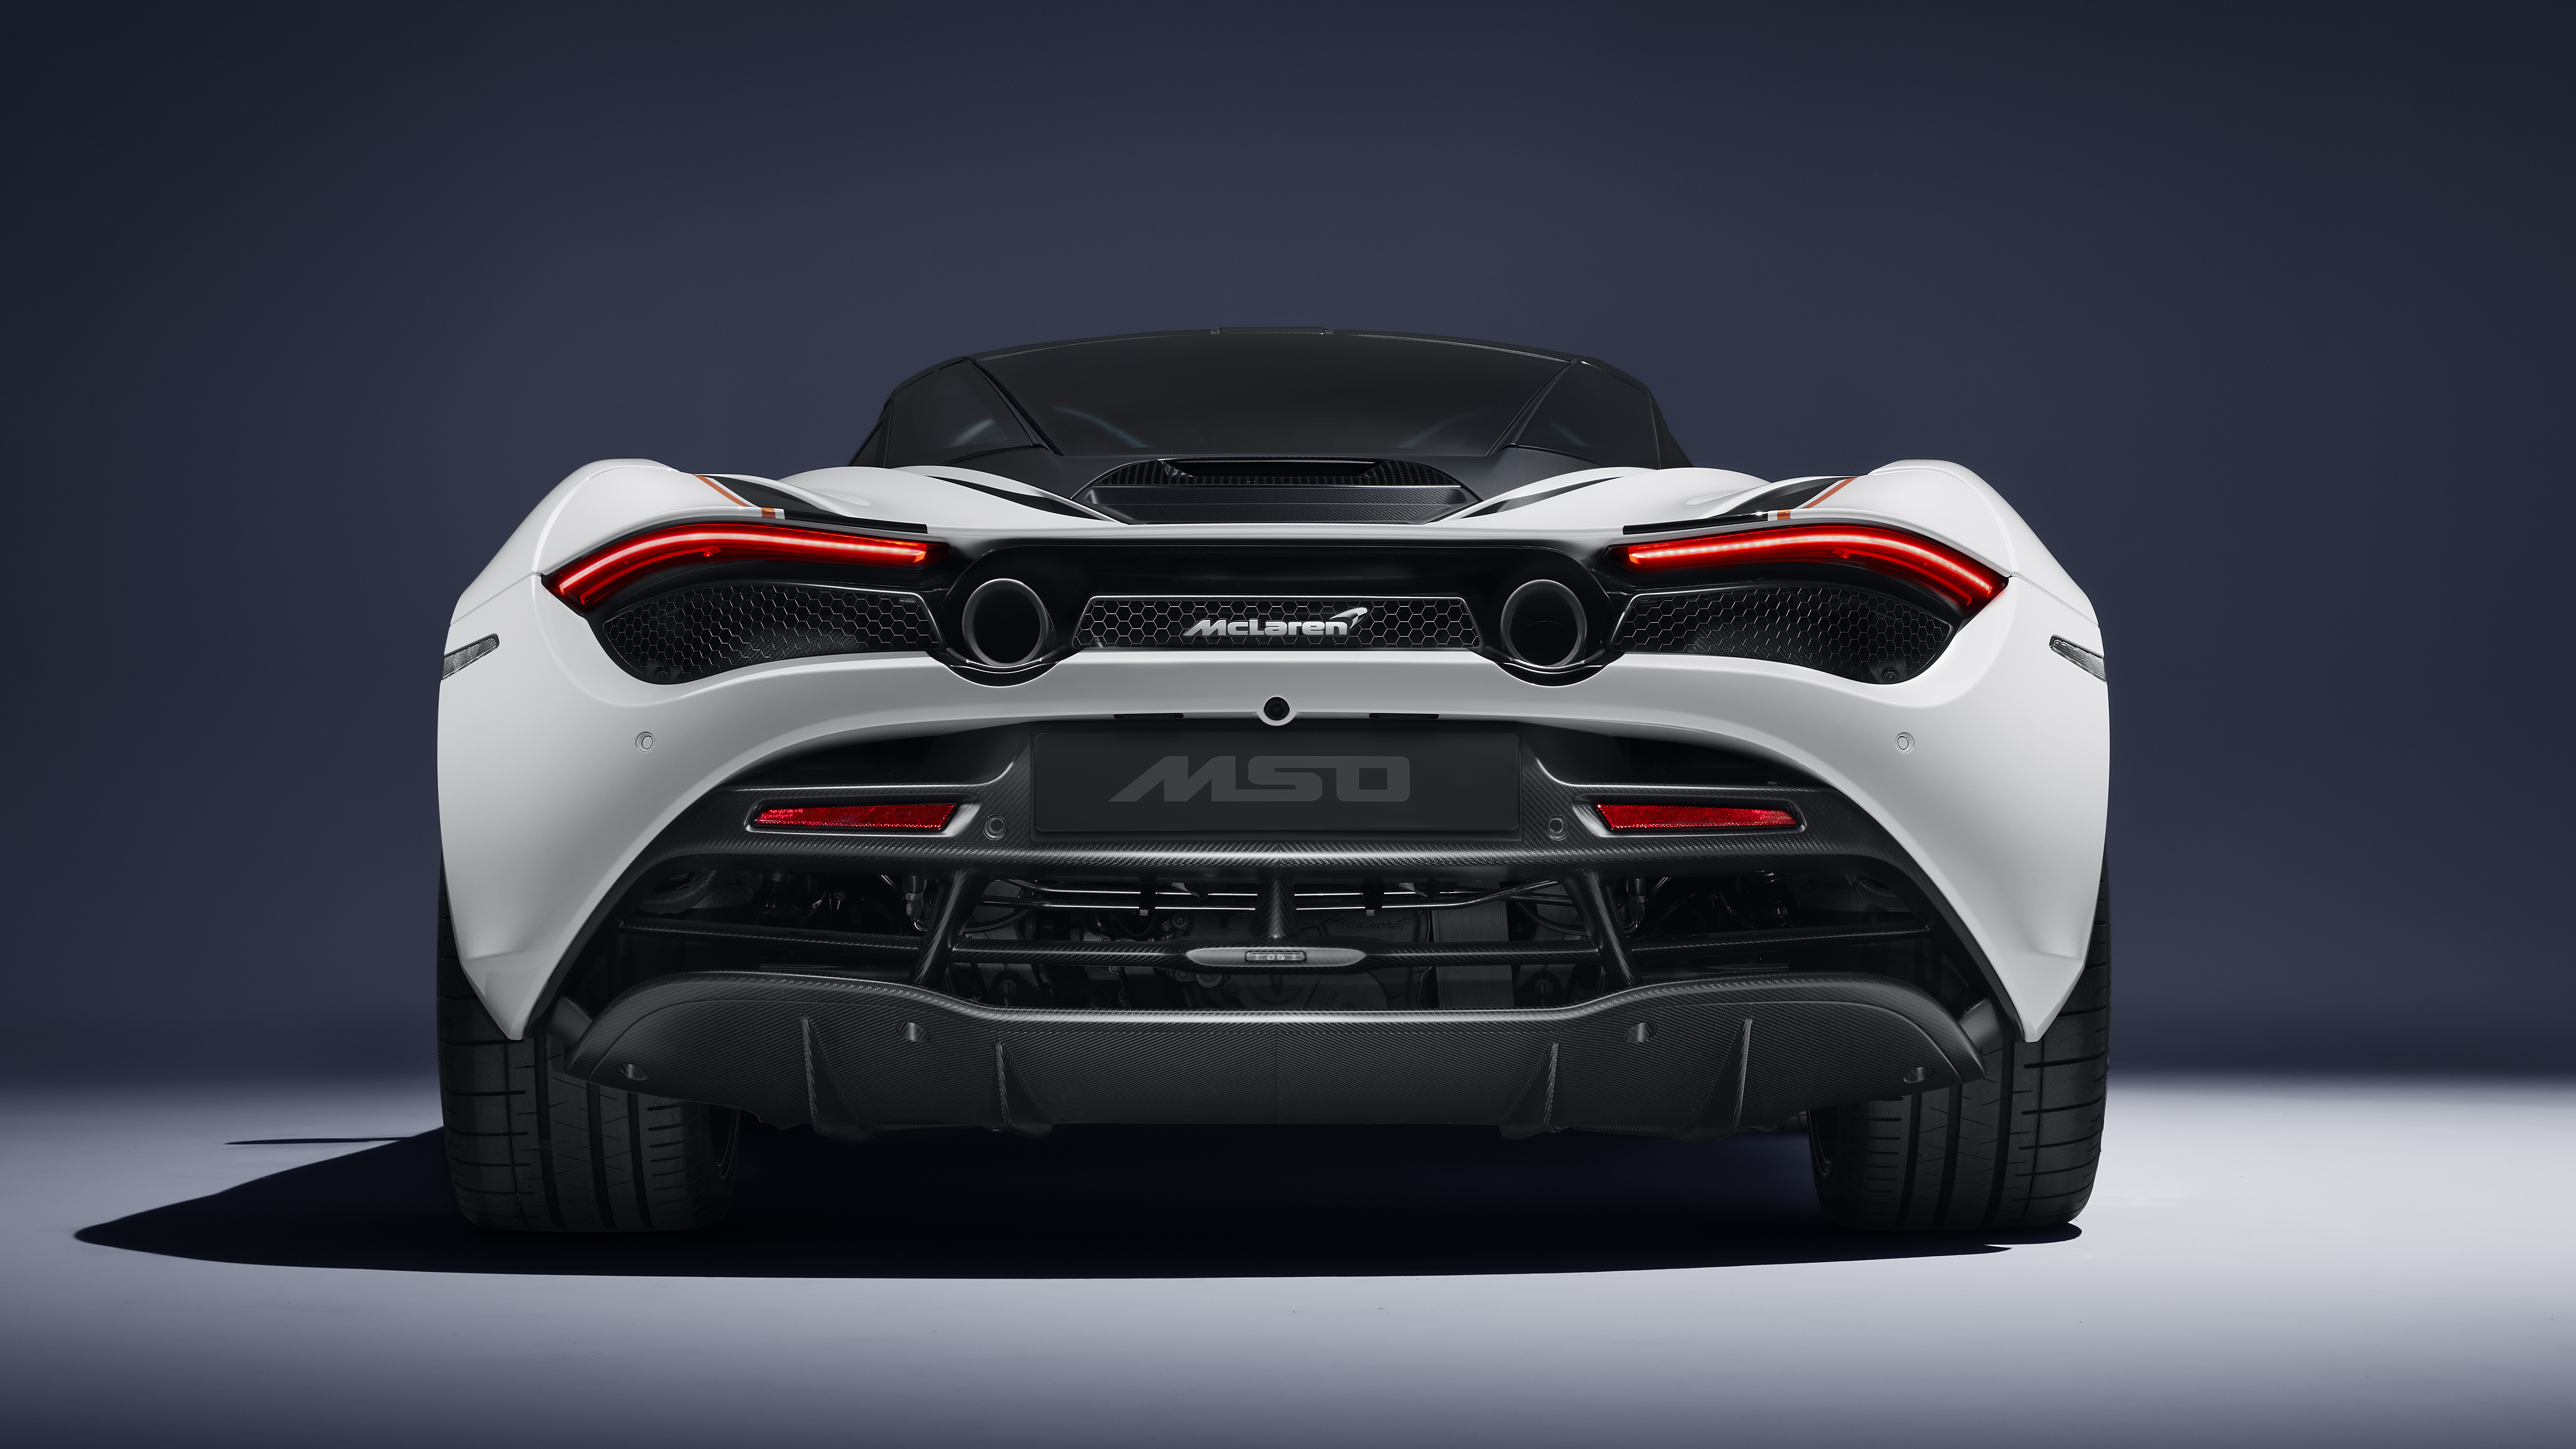 5 Car Themed Wallpapers For Ipad: McLaren 720S Track Theme 2018 5K 4 Wallpaper